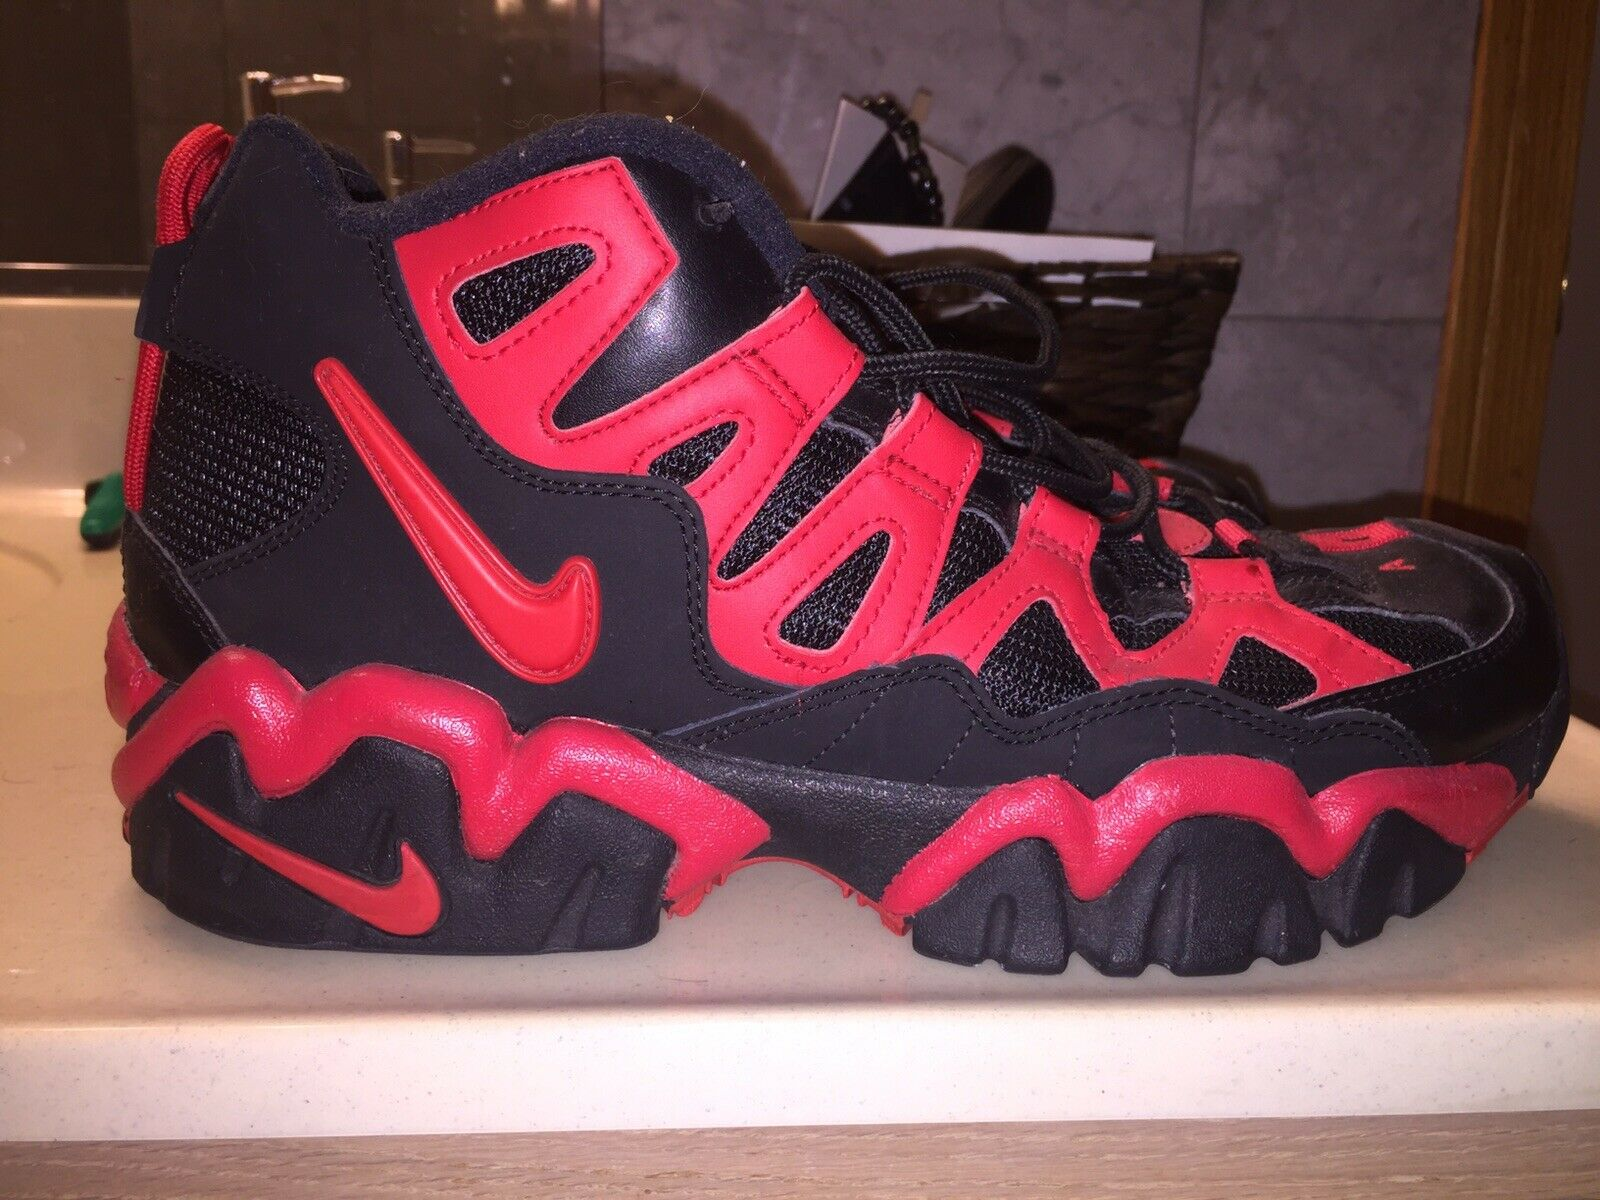 Nike Air Slant Mid Size 11.5 Black Red